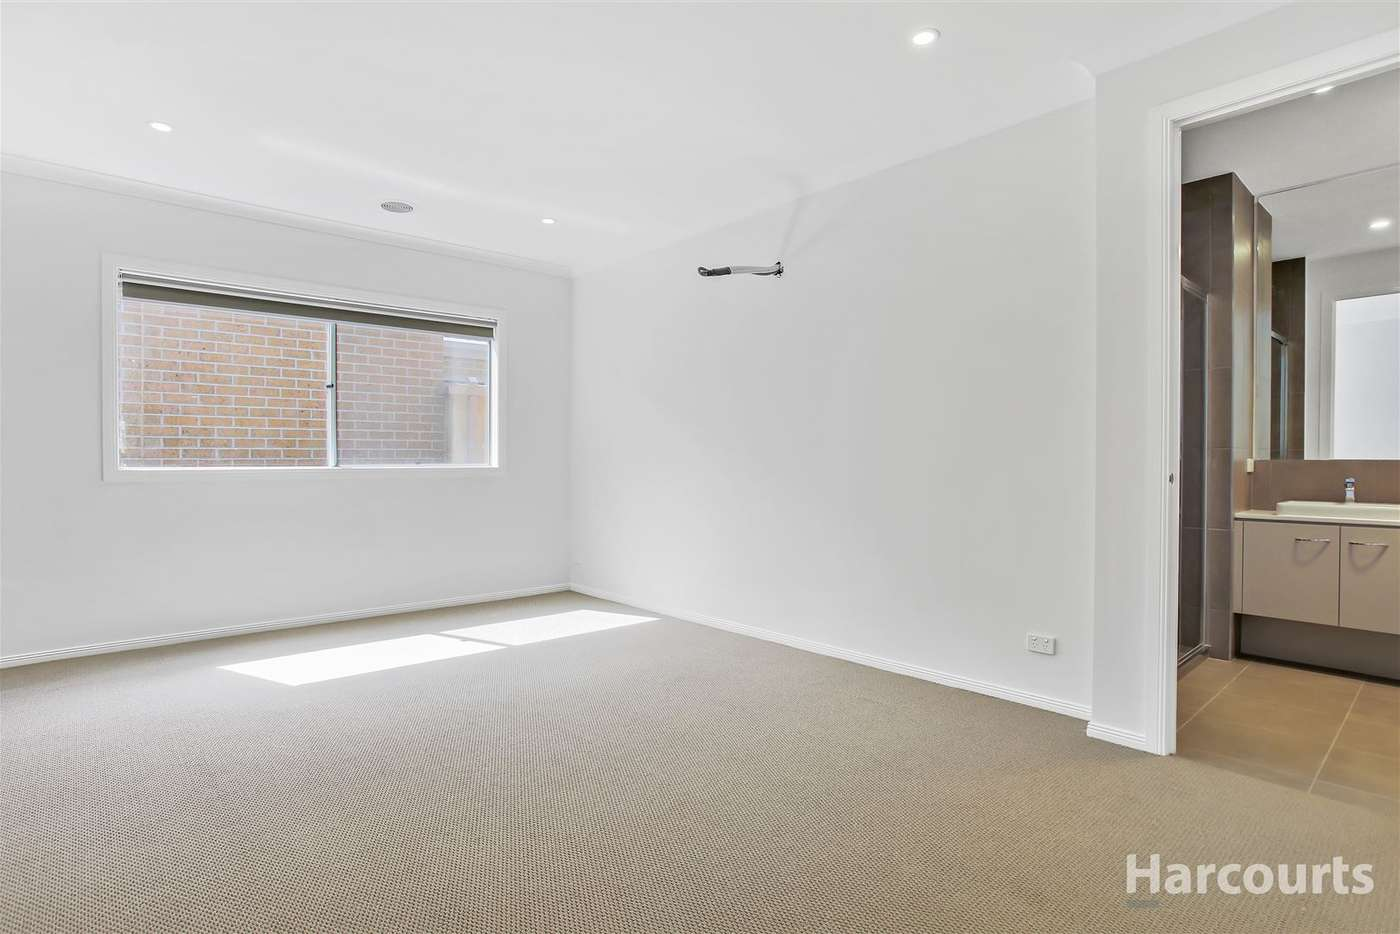 Sixth view of Homely house listing, 104 Fenway Boulevard, Clyde North VIC 3978